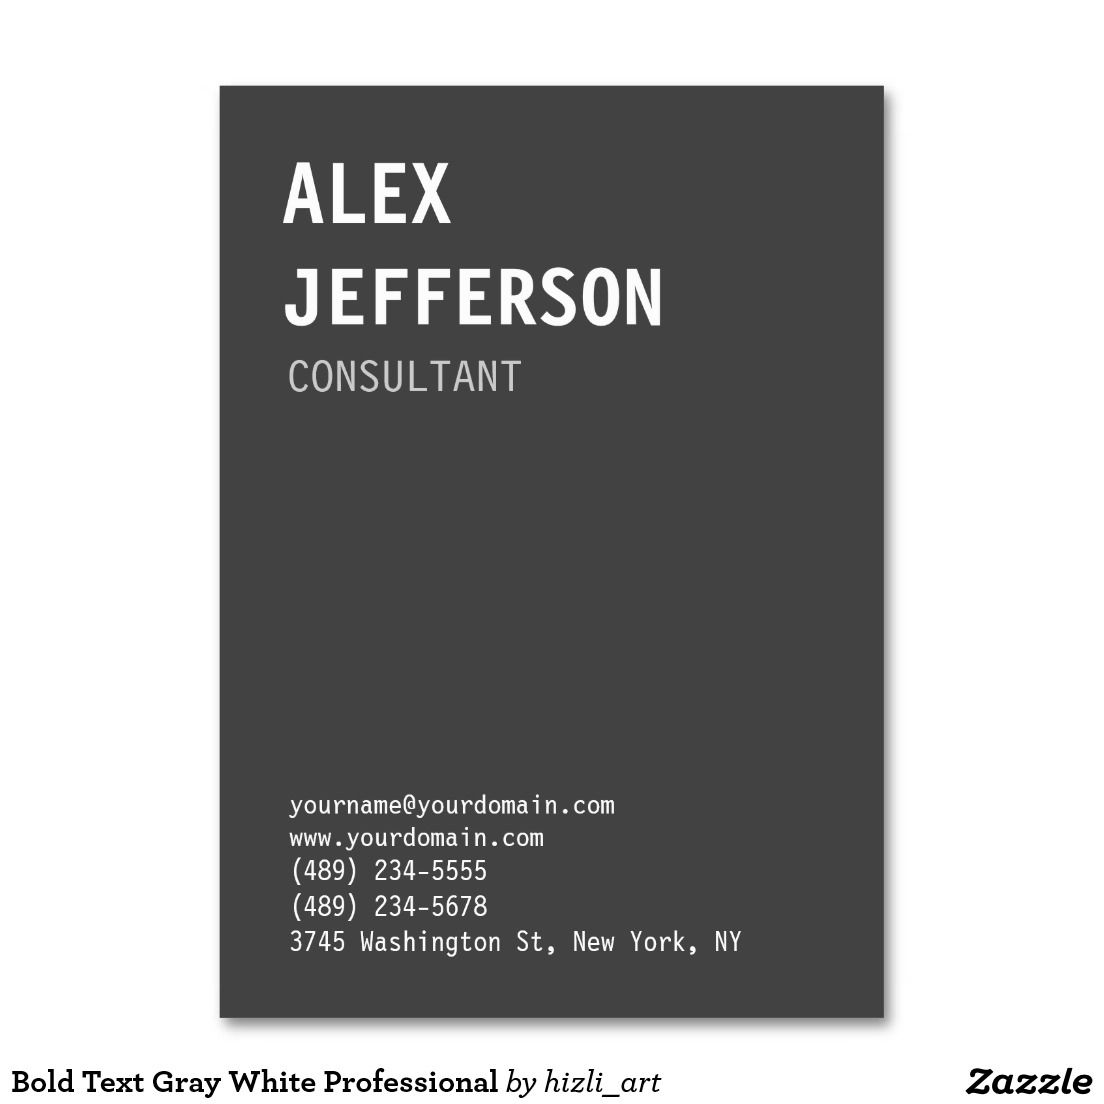 Bold text gray white professional large business card